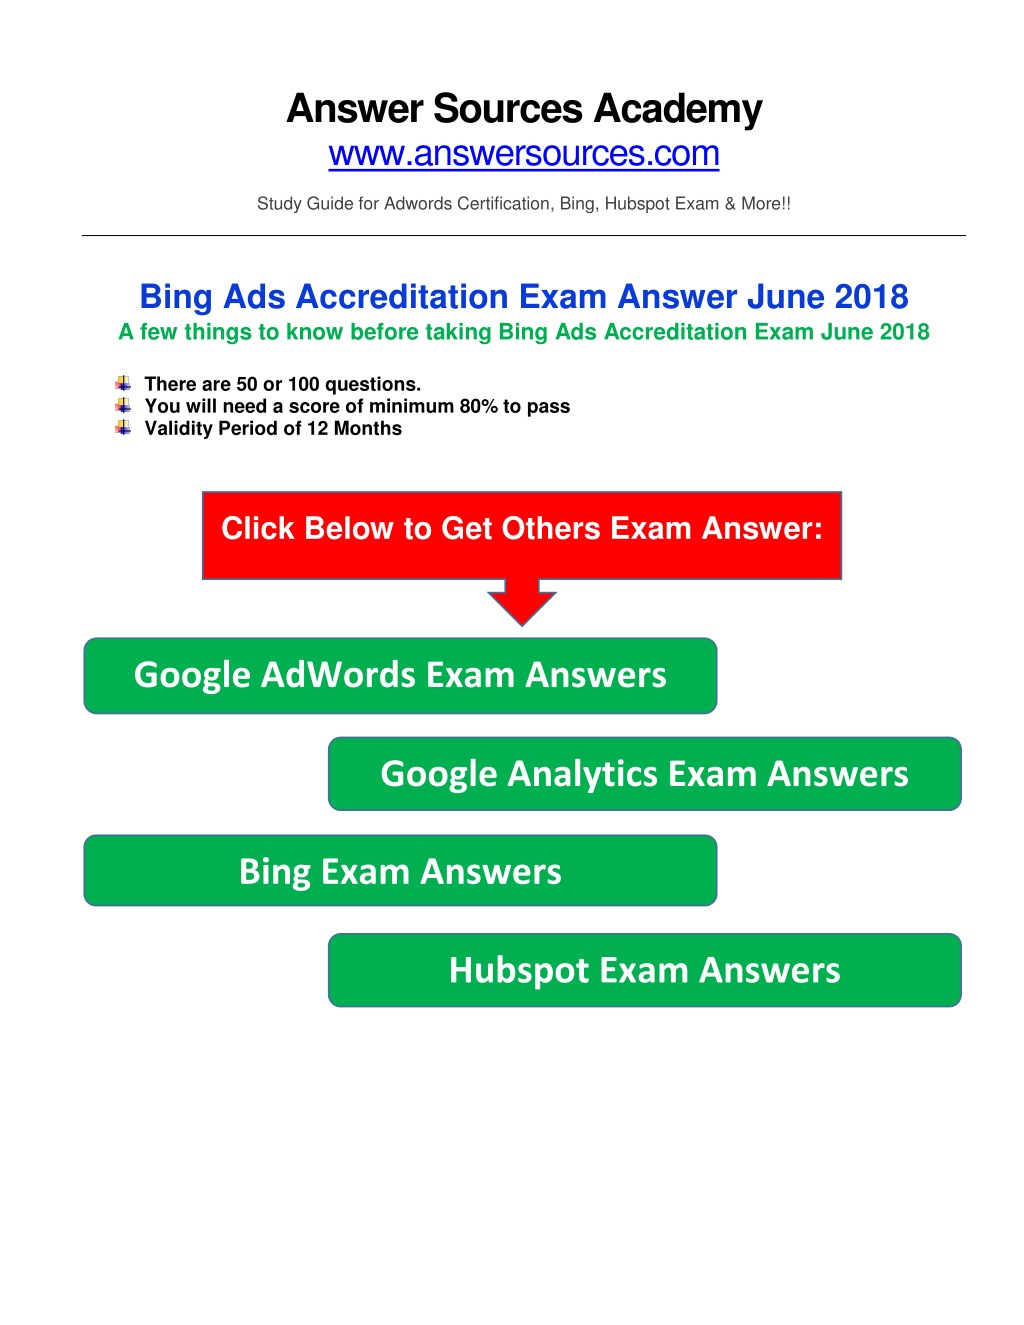 Ppt Bing Ads Accreditation Exam Answer June 2018 Powerpoint